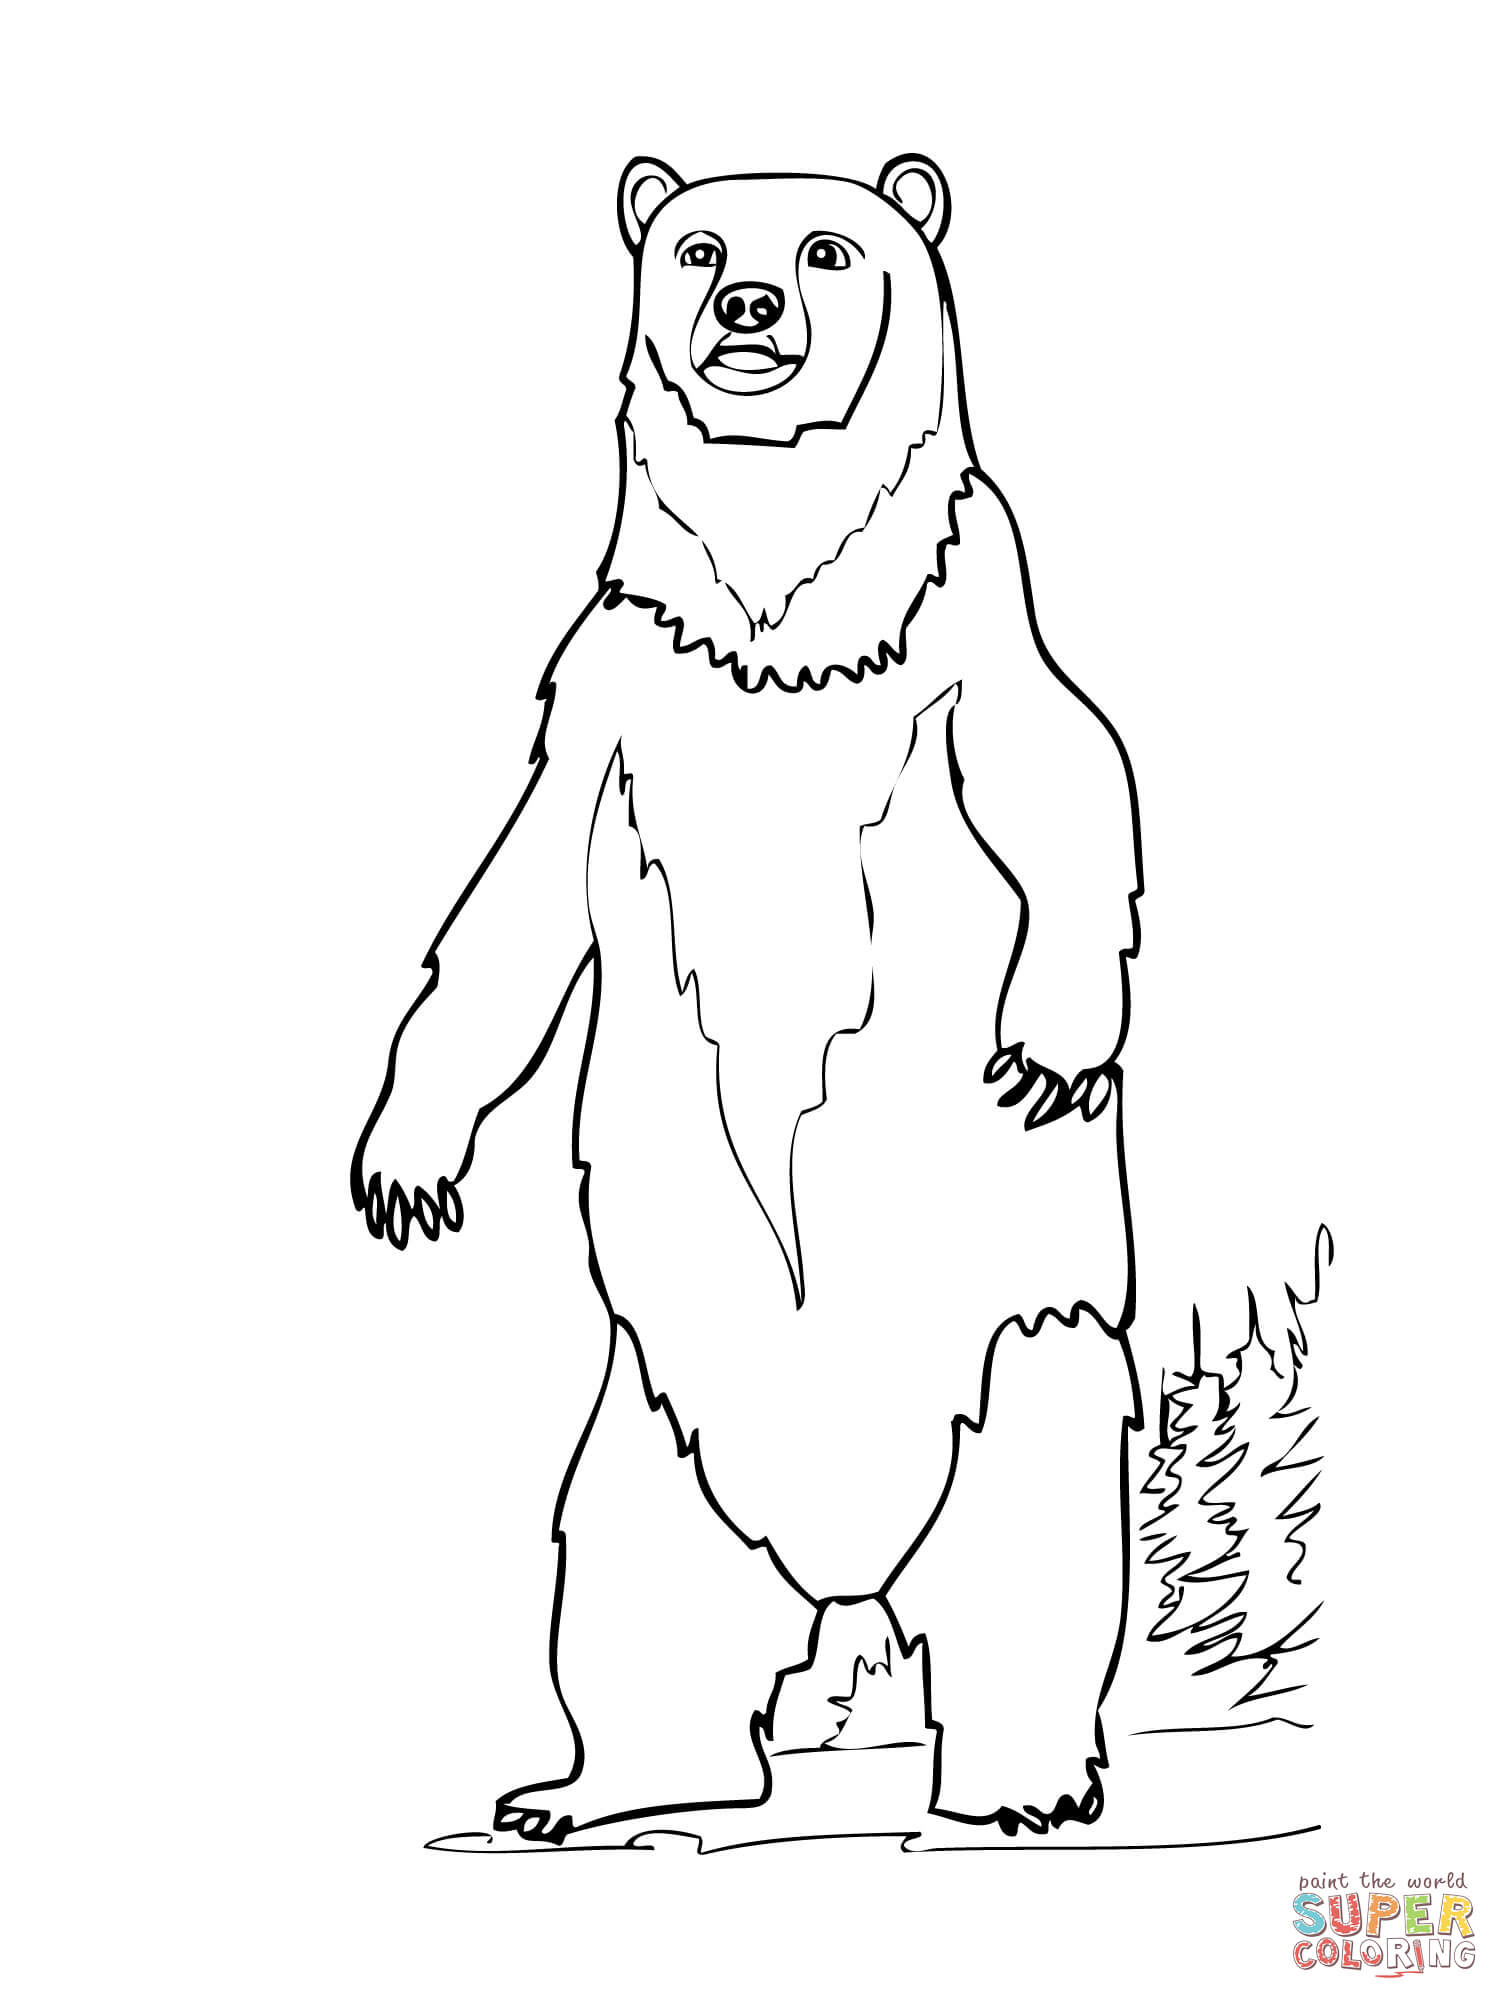 Brown Bear Standing Up Coloring Page  Free Printable Coloring